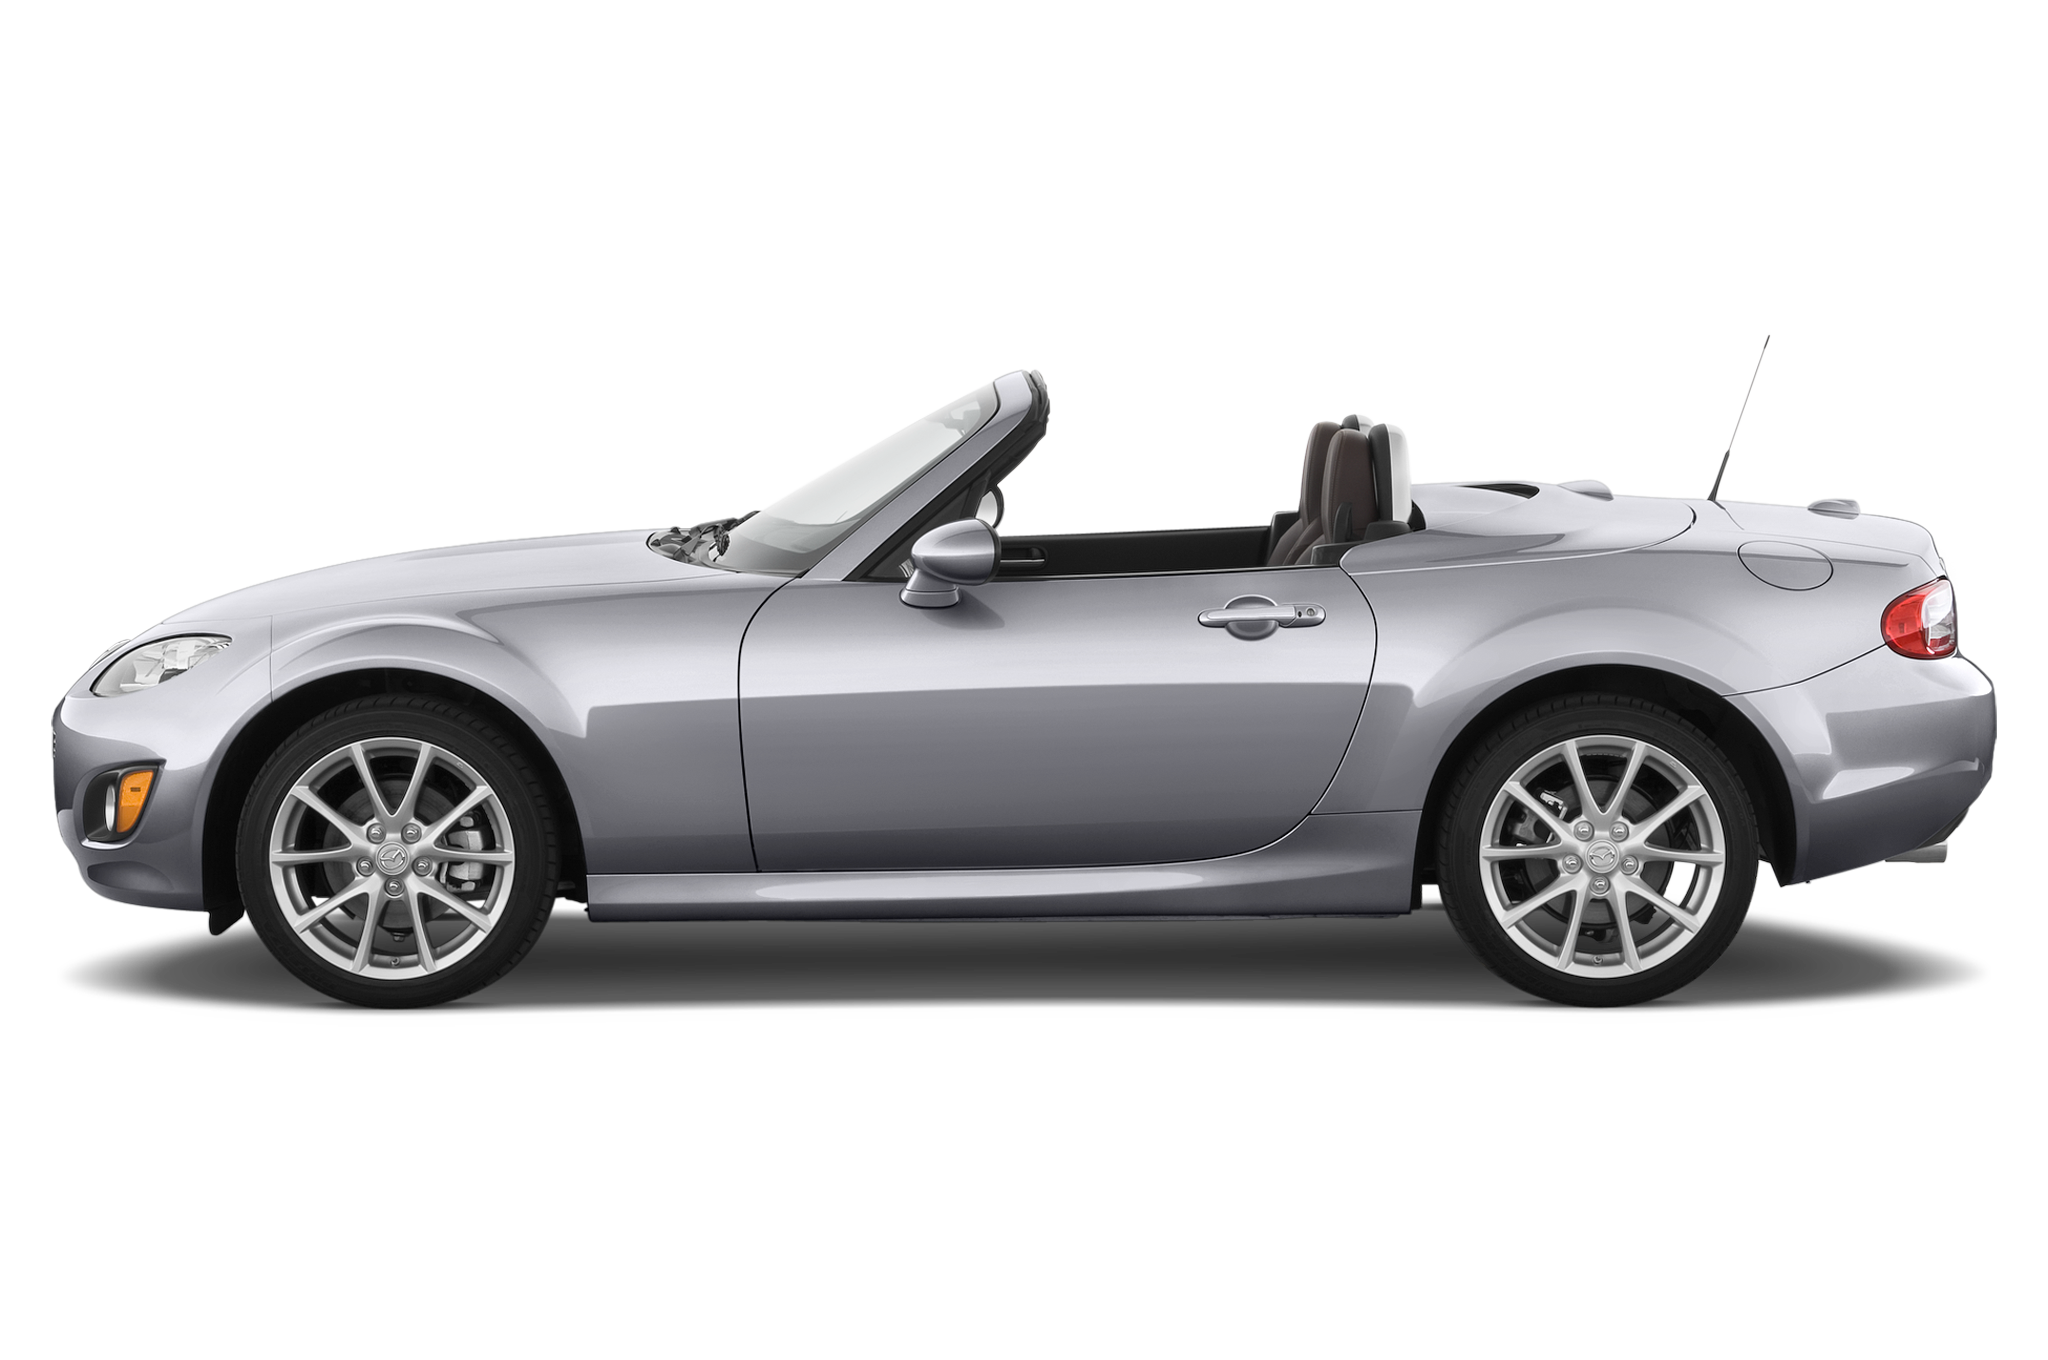 2008 Mazda Miata Grand Touring Wiring Diagram Free Download Oasis 2012 5 Mx Special Edition Prht Editors Notebook 2009 Interior At